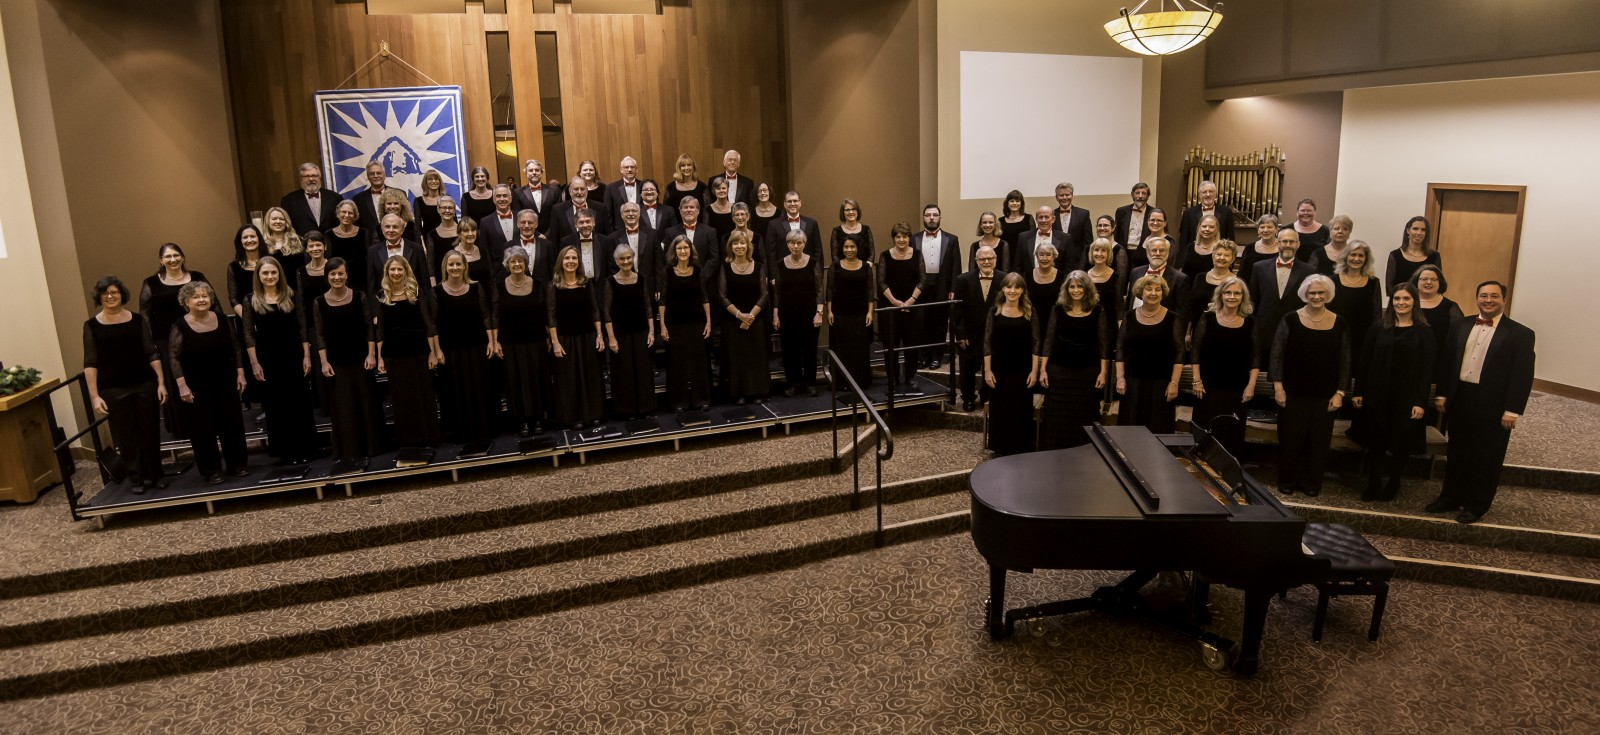 Bainbridge Chorale. Photo courtesy Richard Malzahn